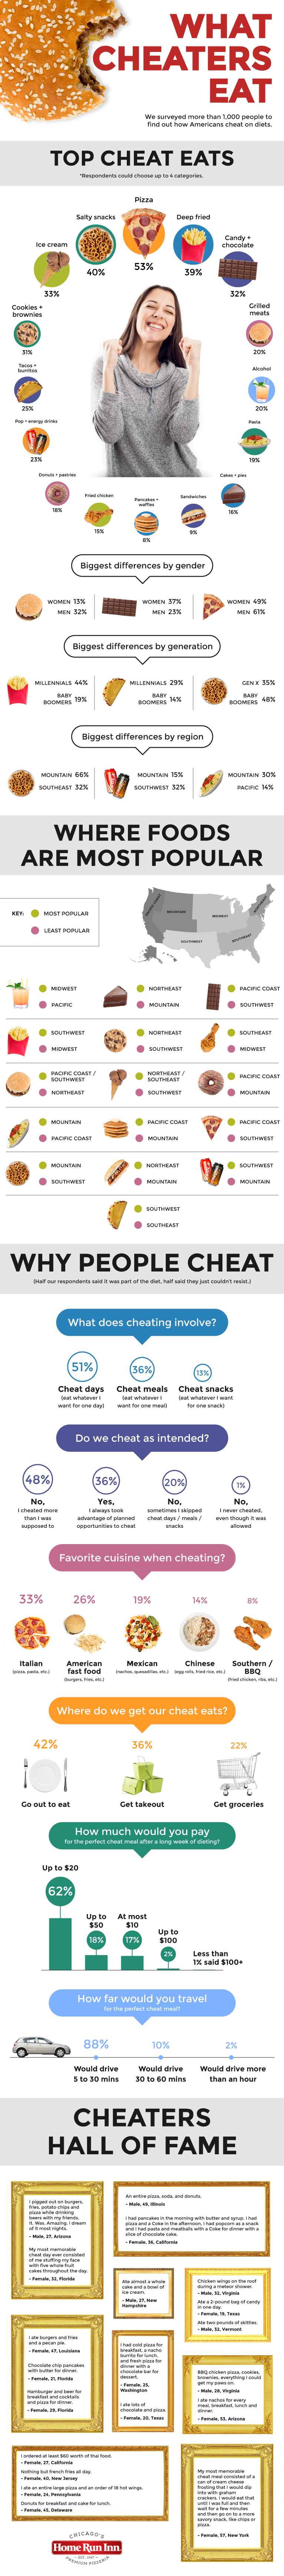 Americans Describe Their Cheat Day - Infographic